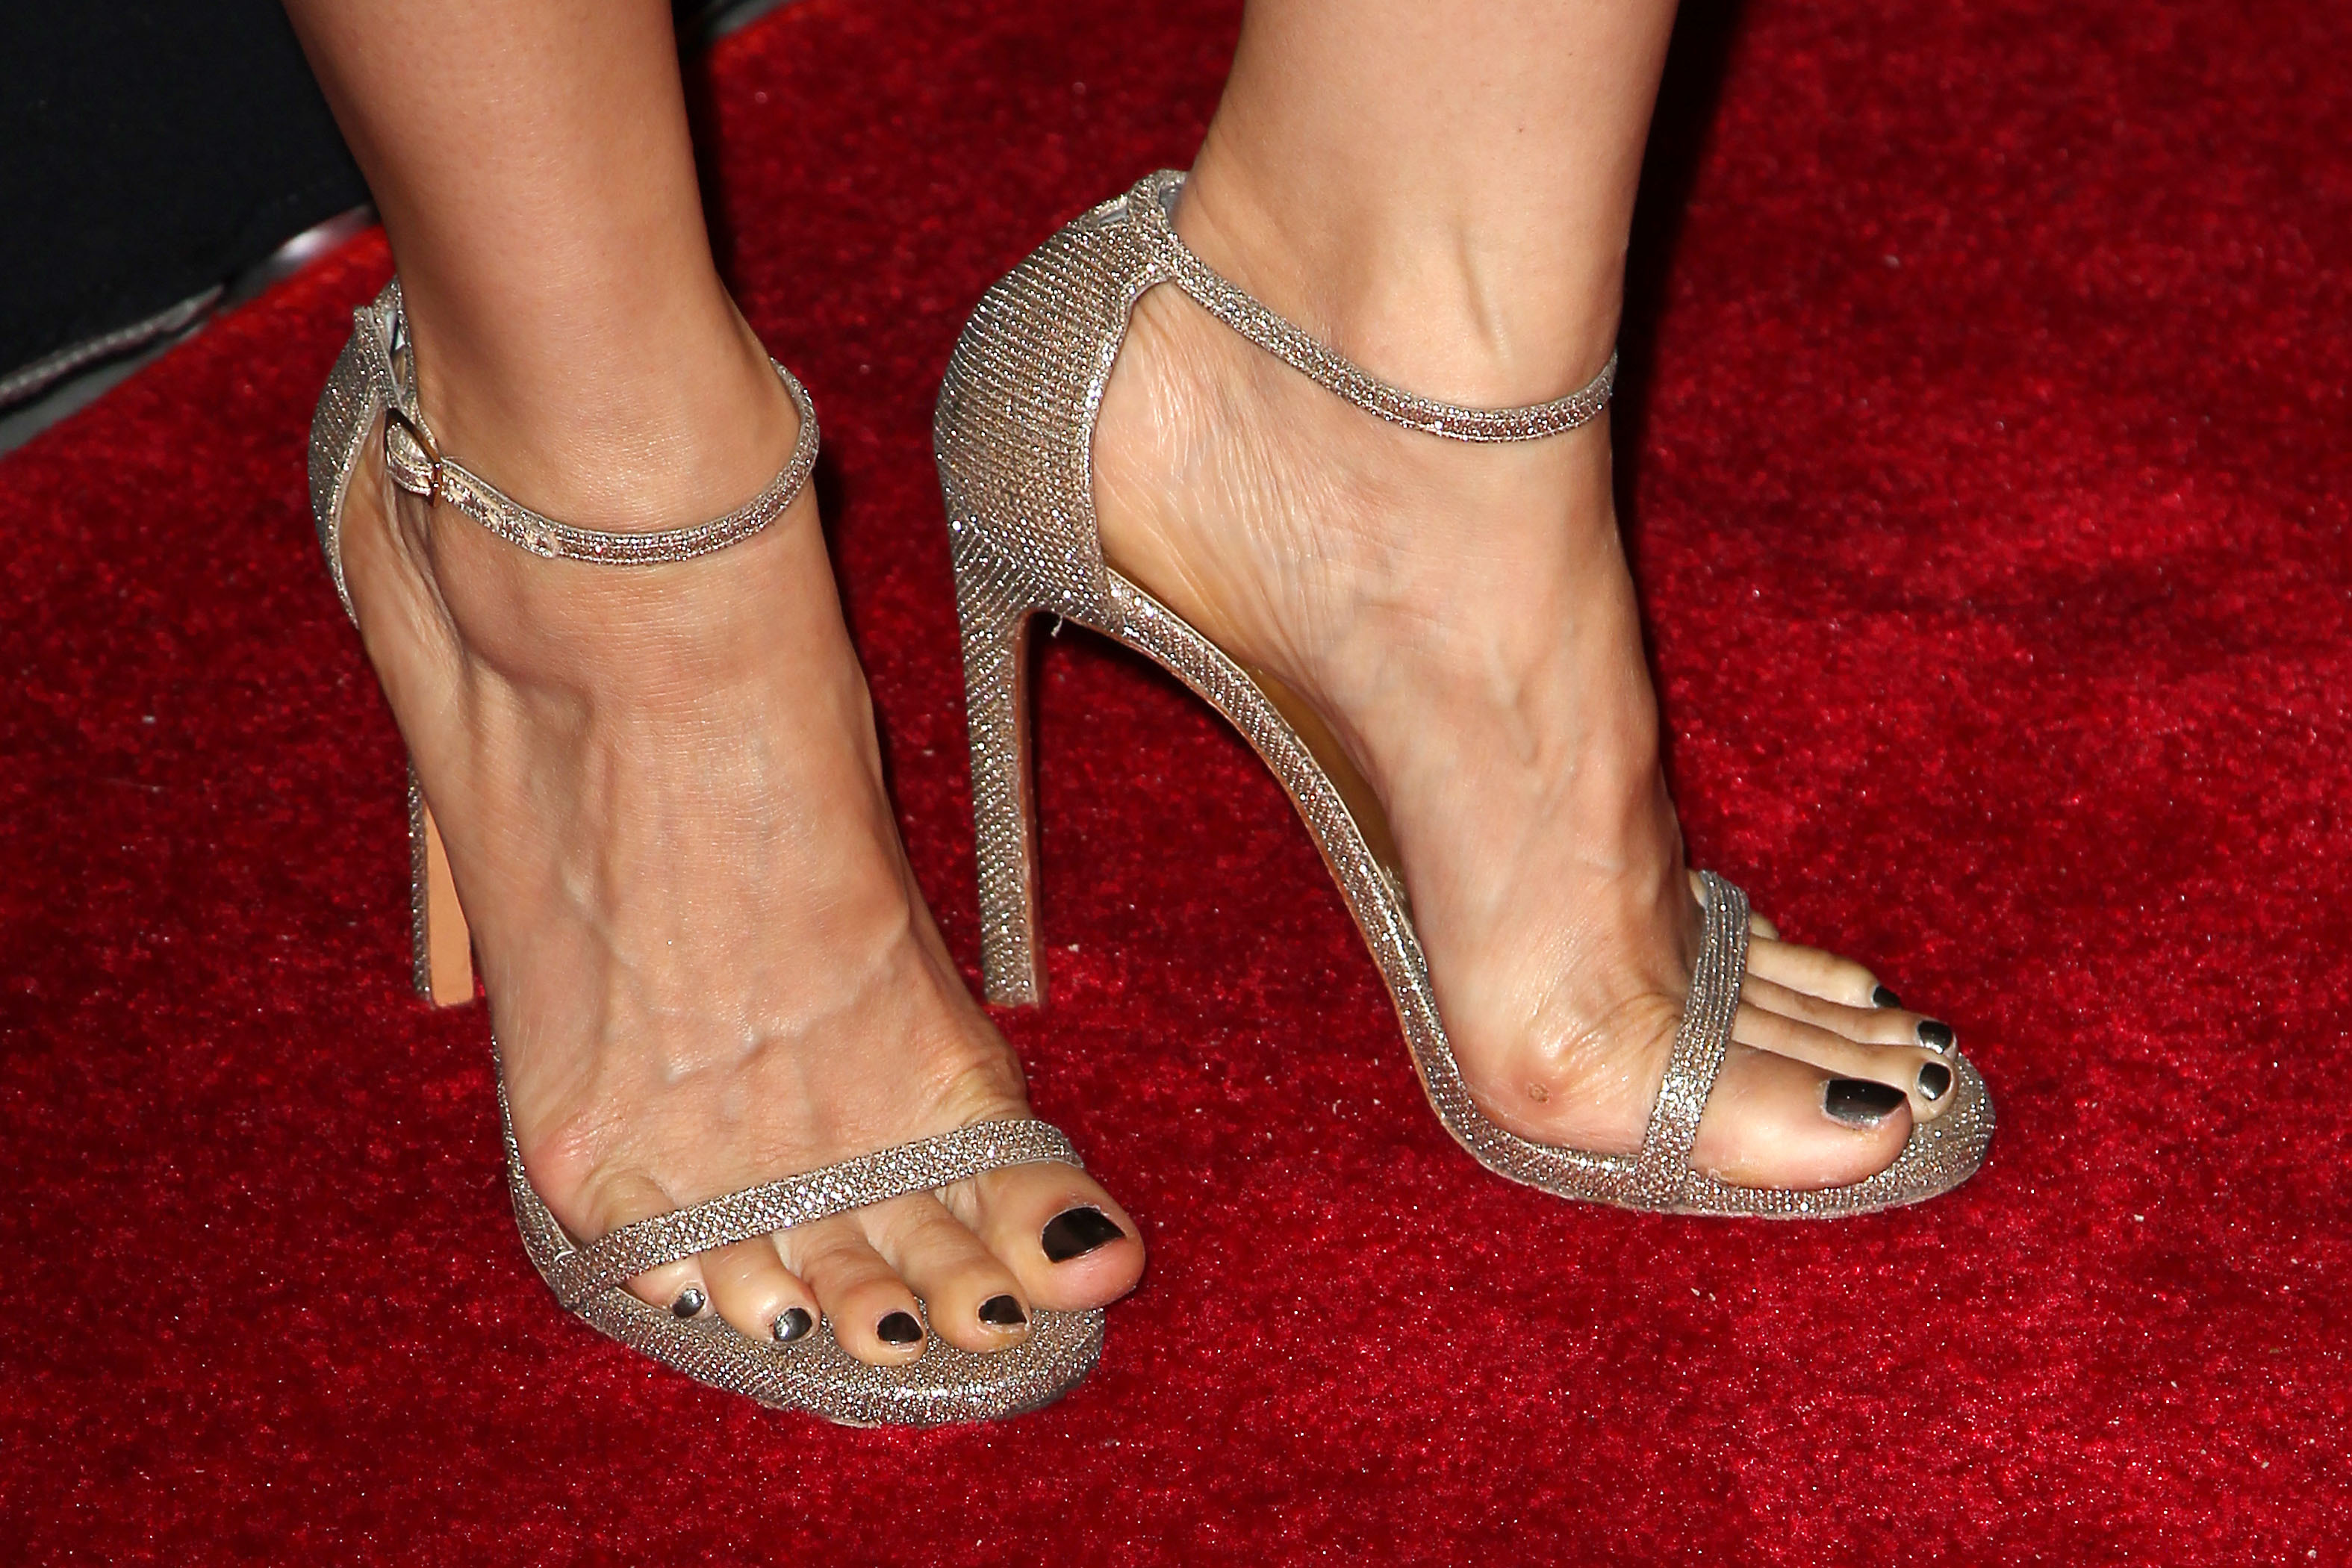 Feet Pictures 24